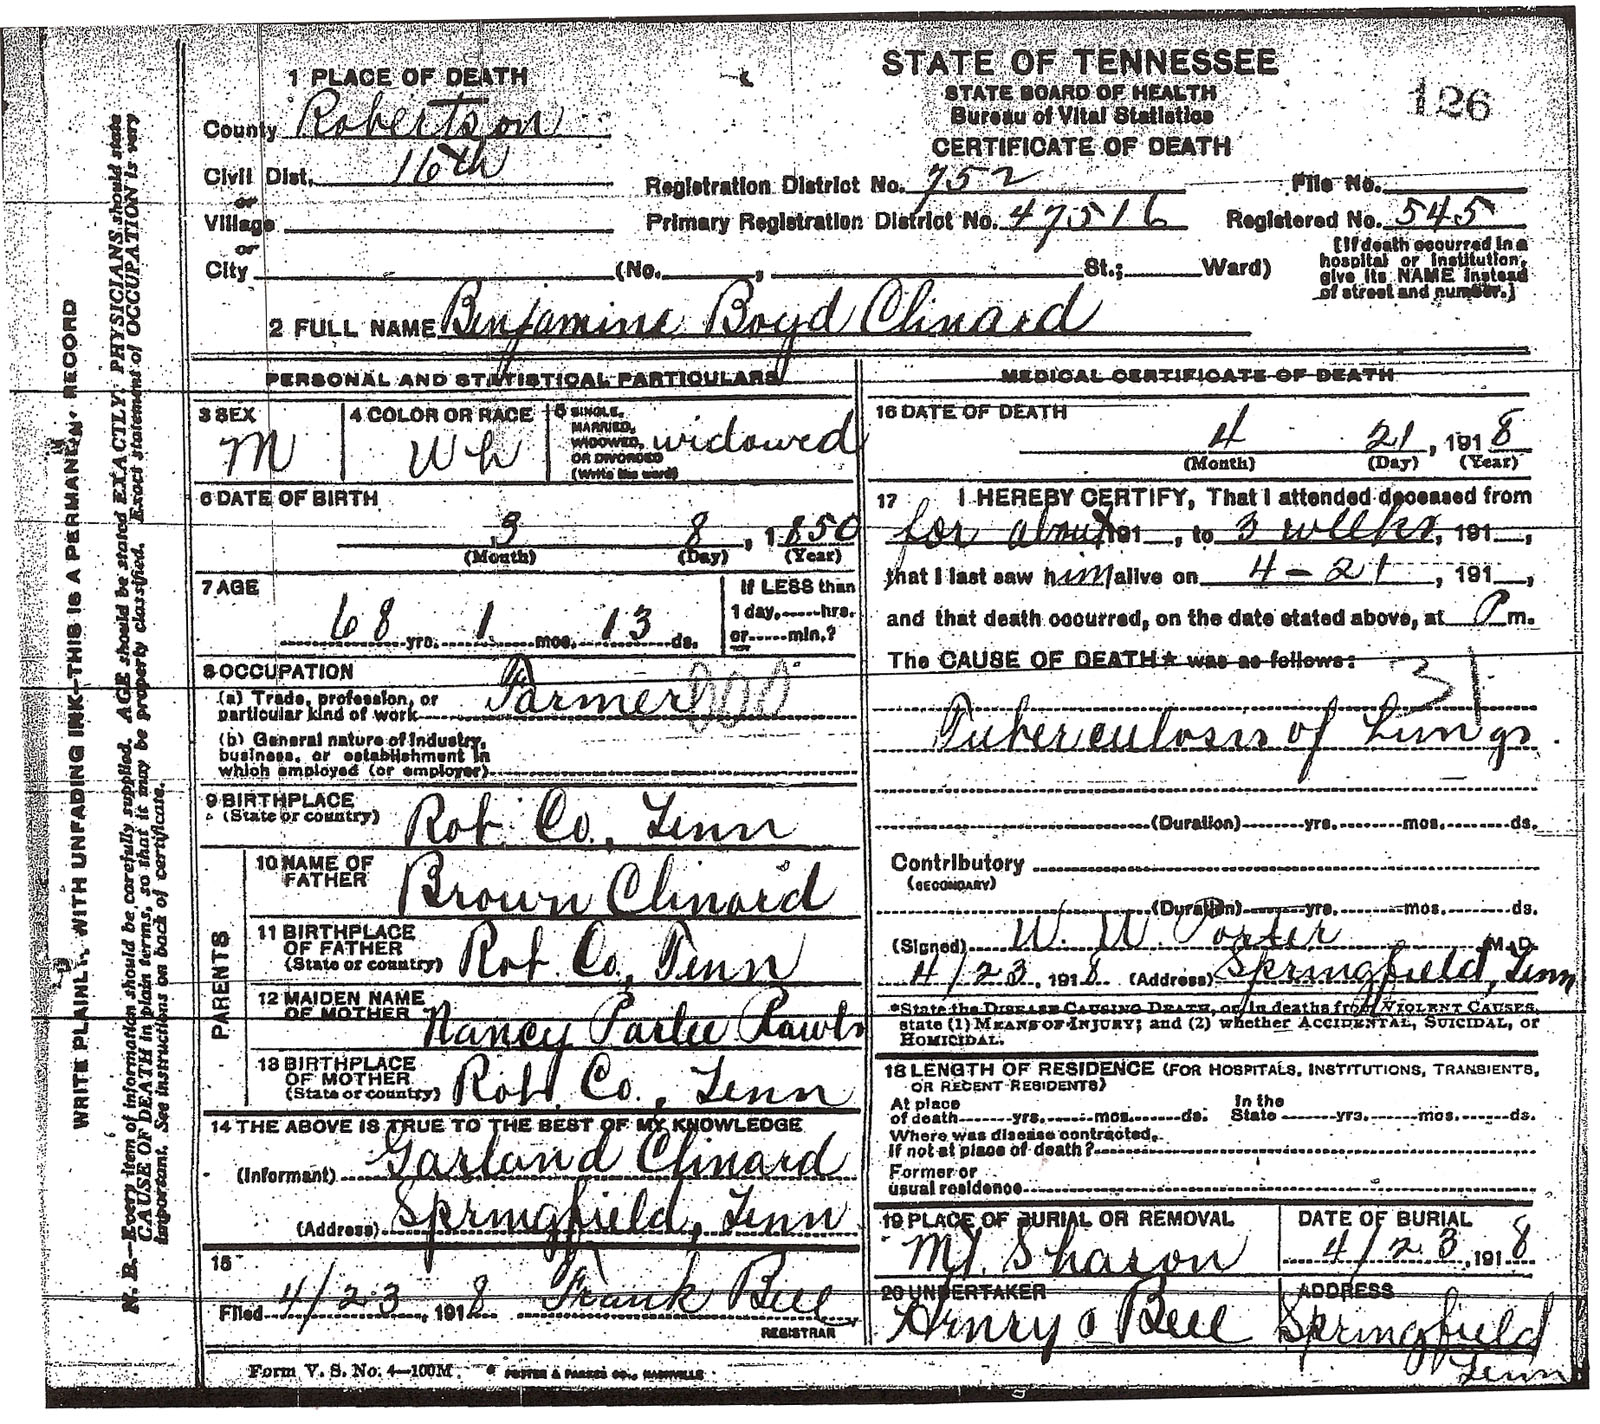 Clinard death certificates robertson county tn busybeetraveler information you can glean from death certificates parents names spouse where they lived cause of death informant doctor date of death and burial xflitez Choice Image